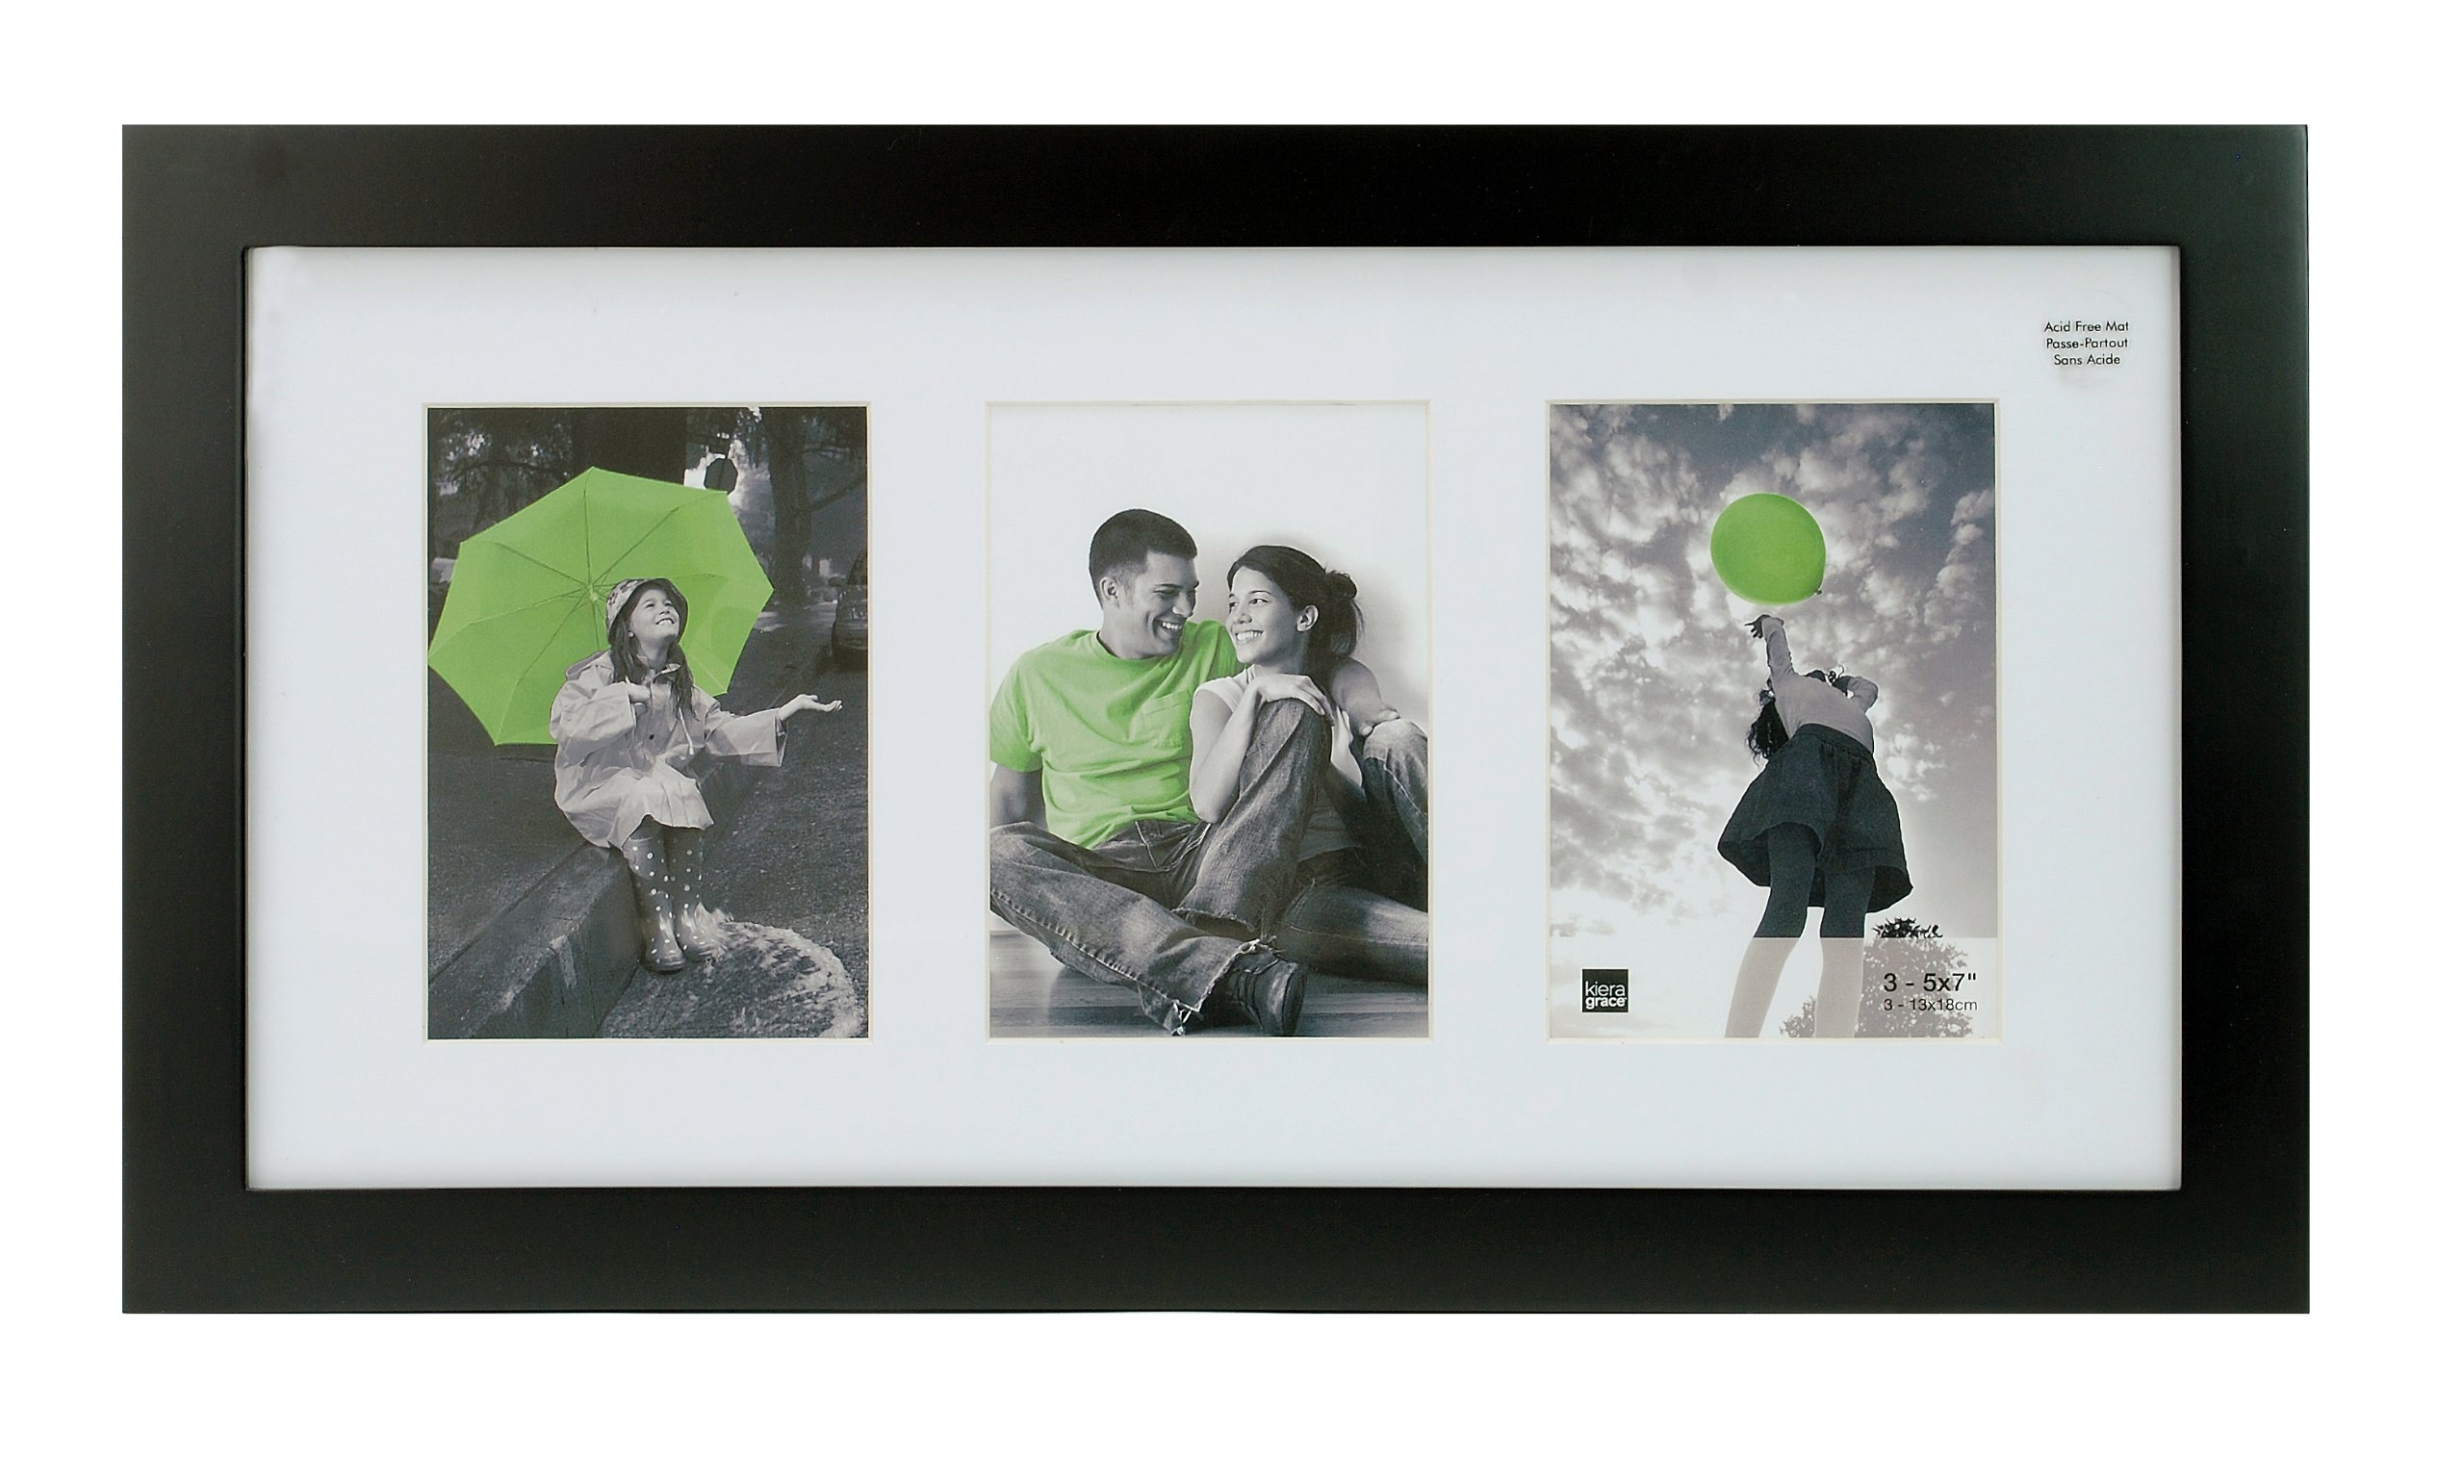 kieragrace Langford Wood Collage Picture Frame, 10 by 20-Inch Matted for 3-5 by 7-Inch Photos, Black by kieragrace (Image #1)